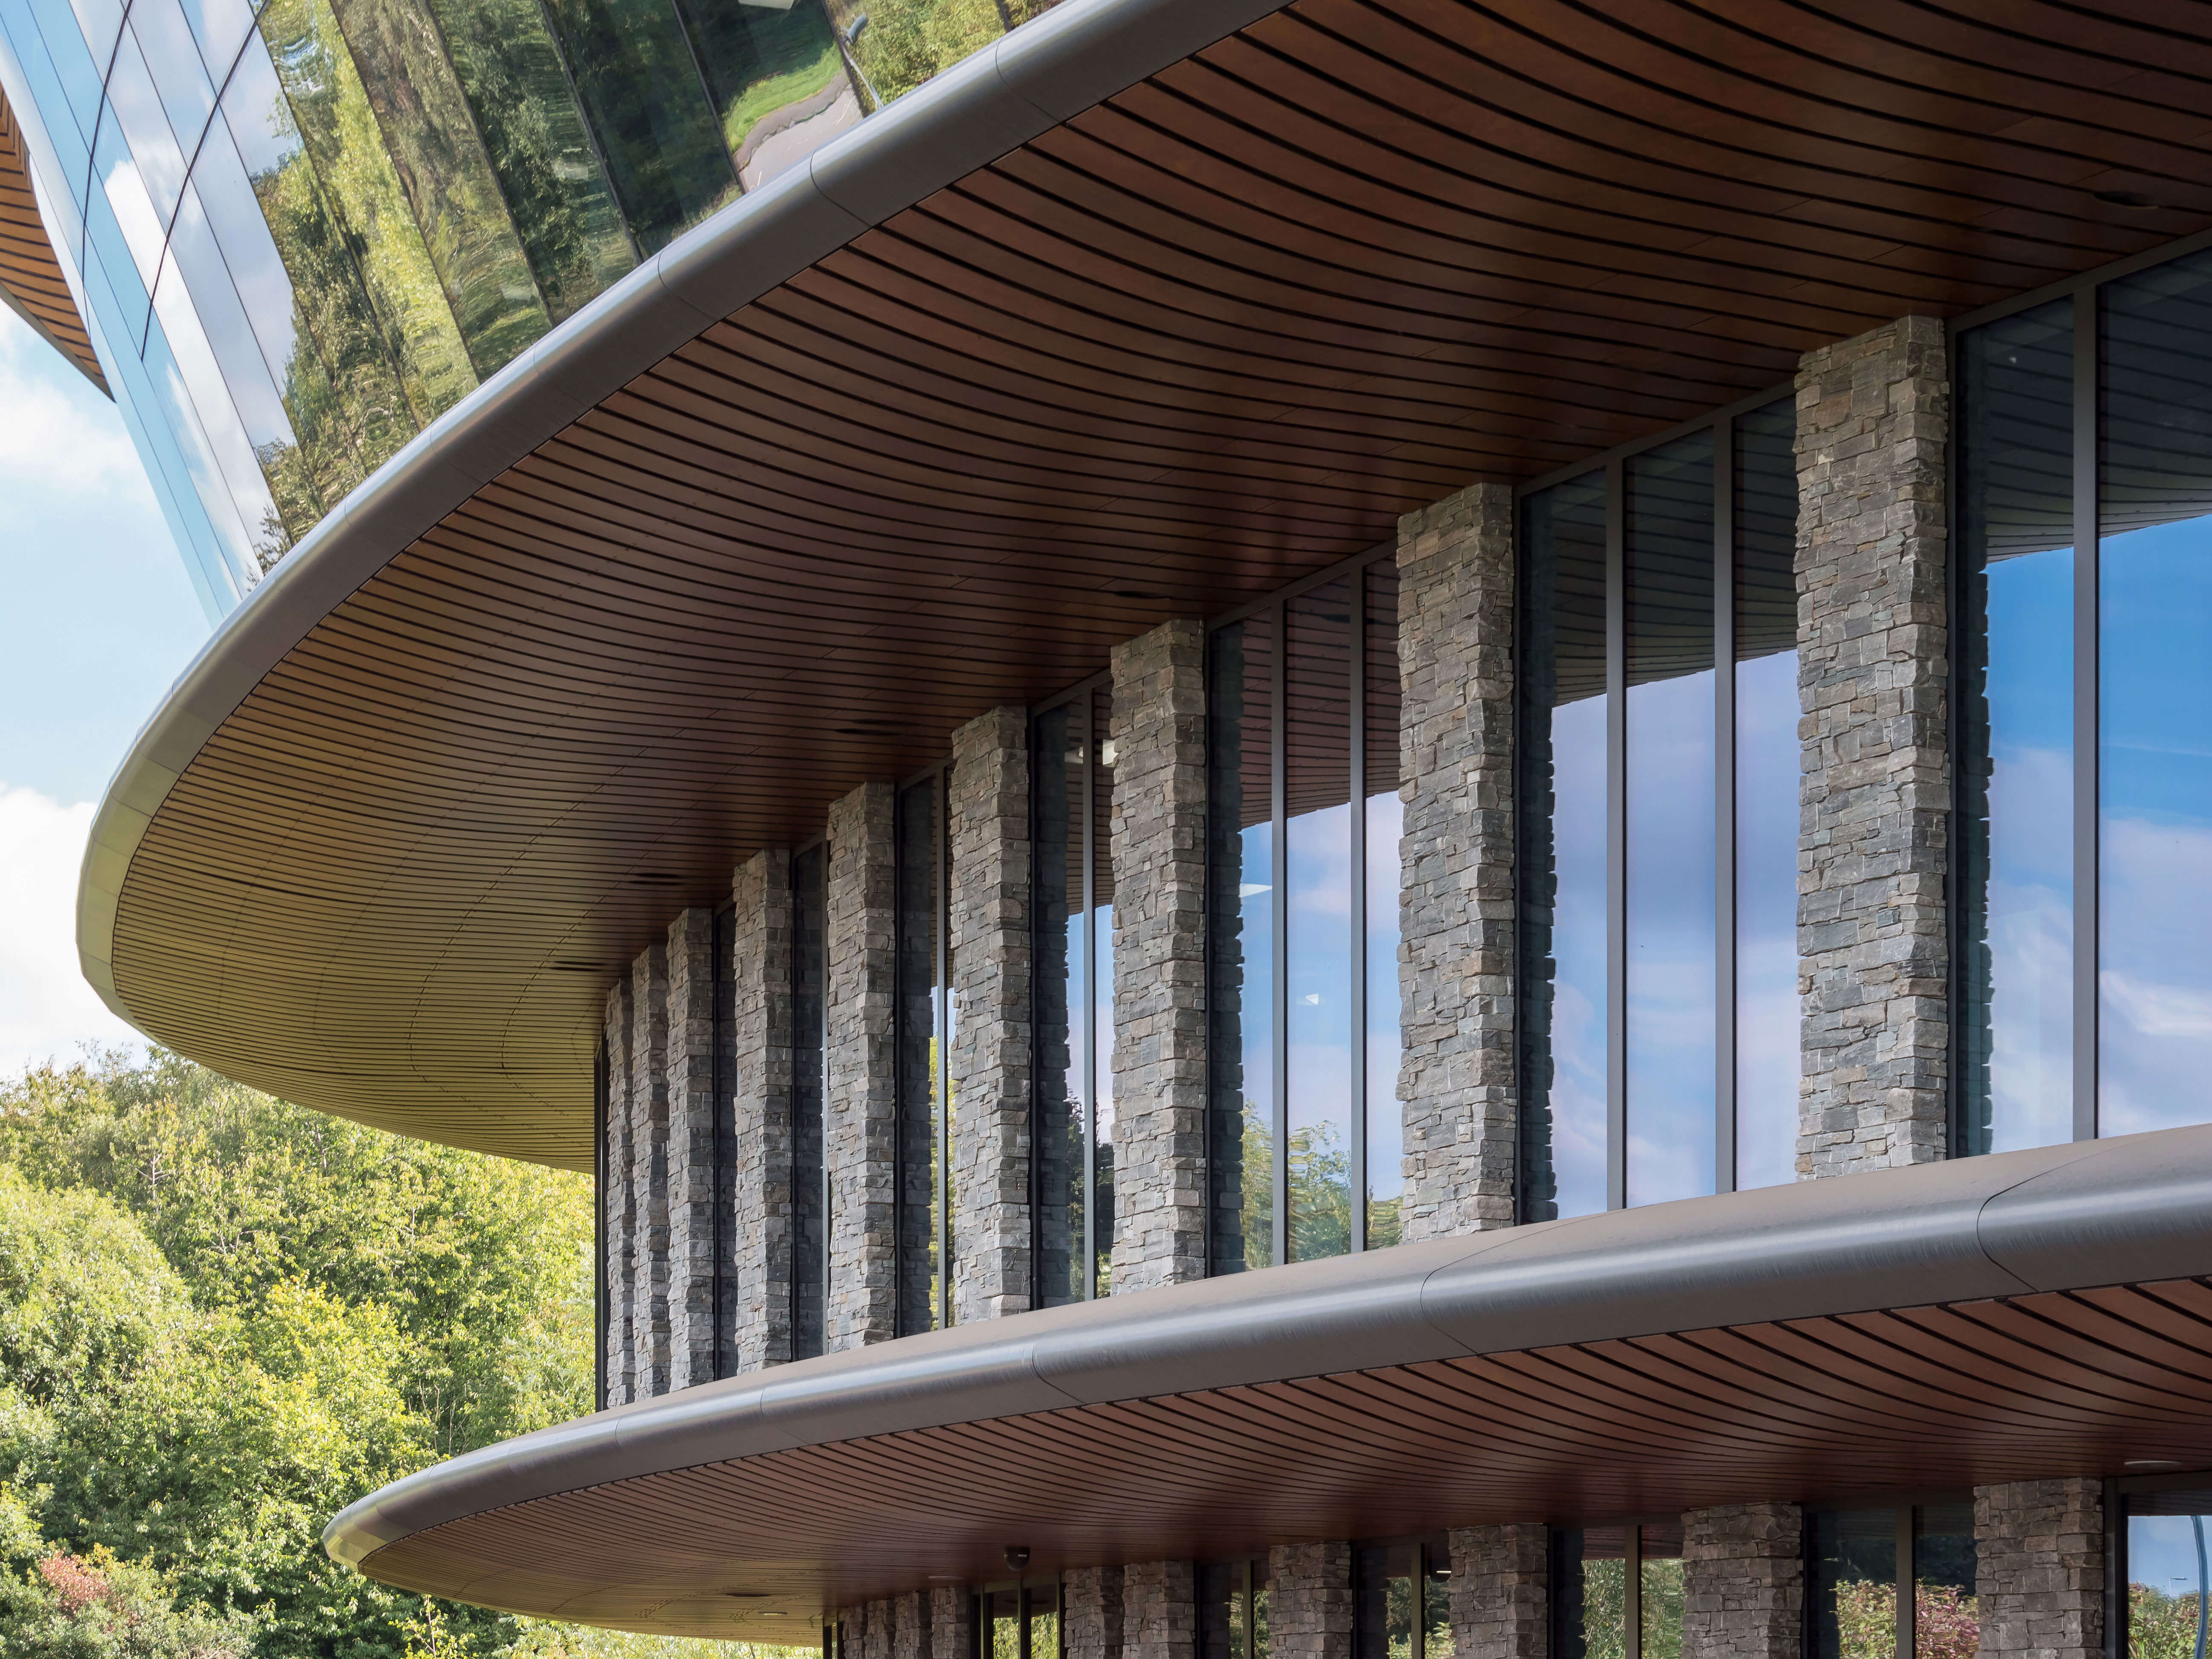 STONEPANEL provides a natural-looking for the Caudwell International Children's Centre in the UK